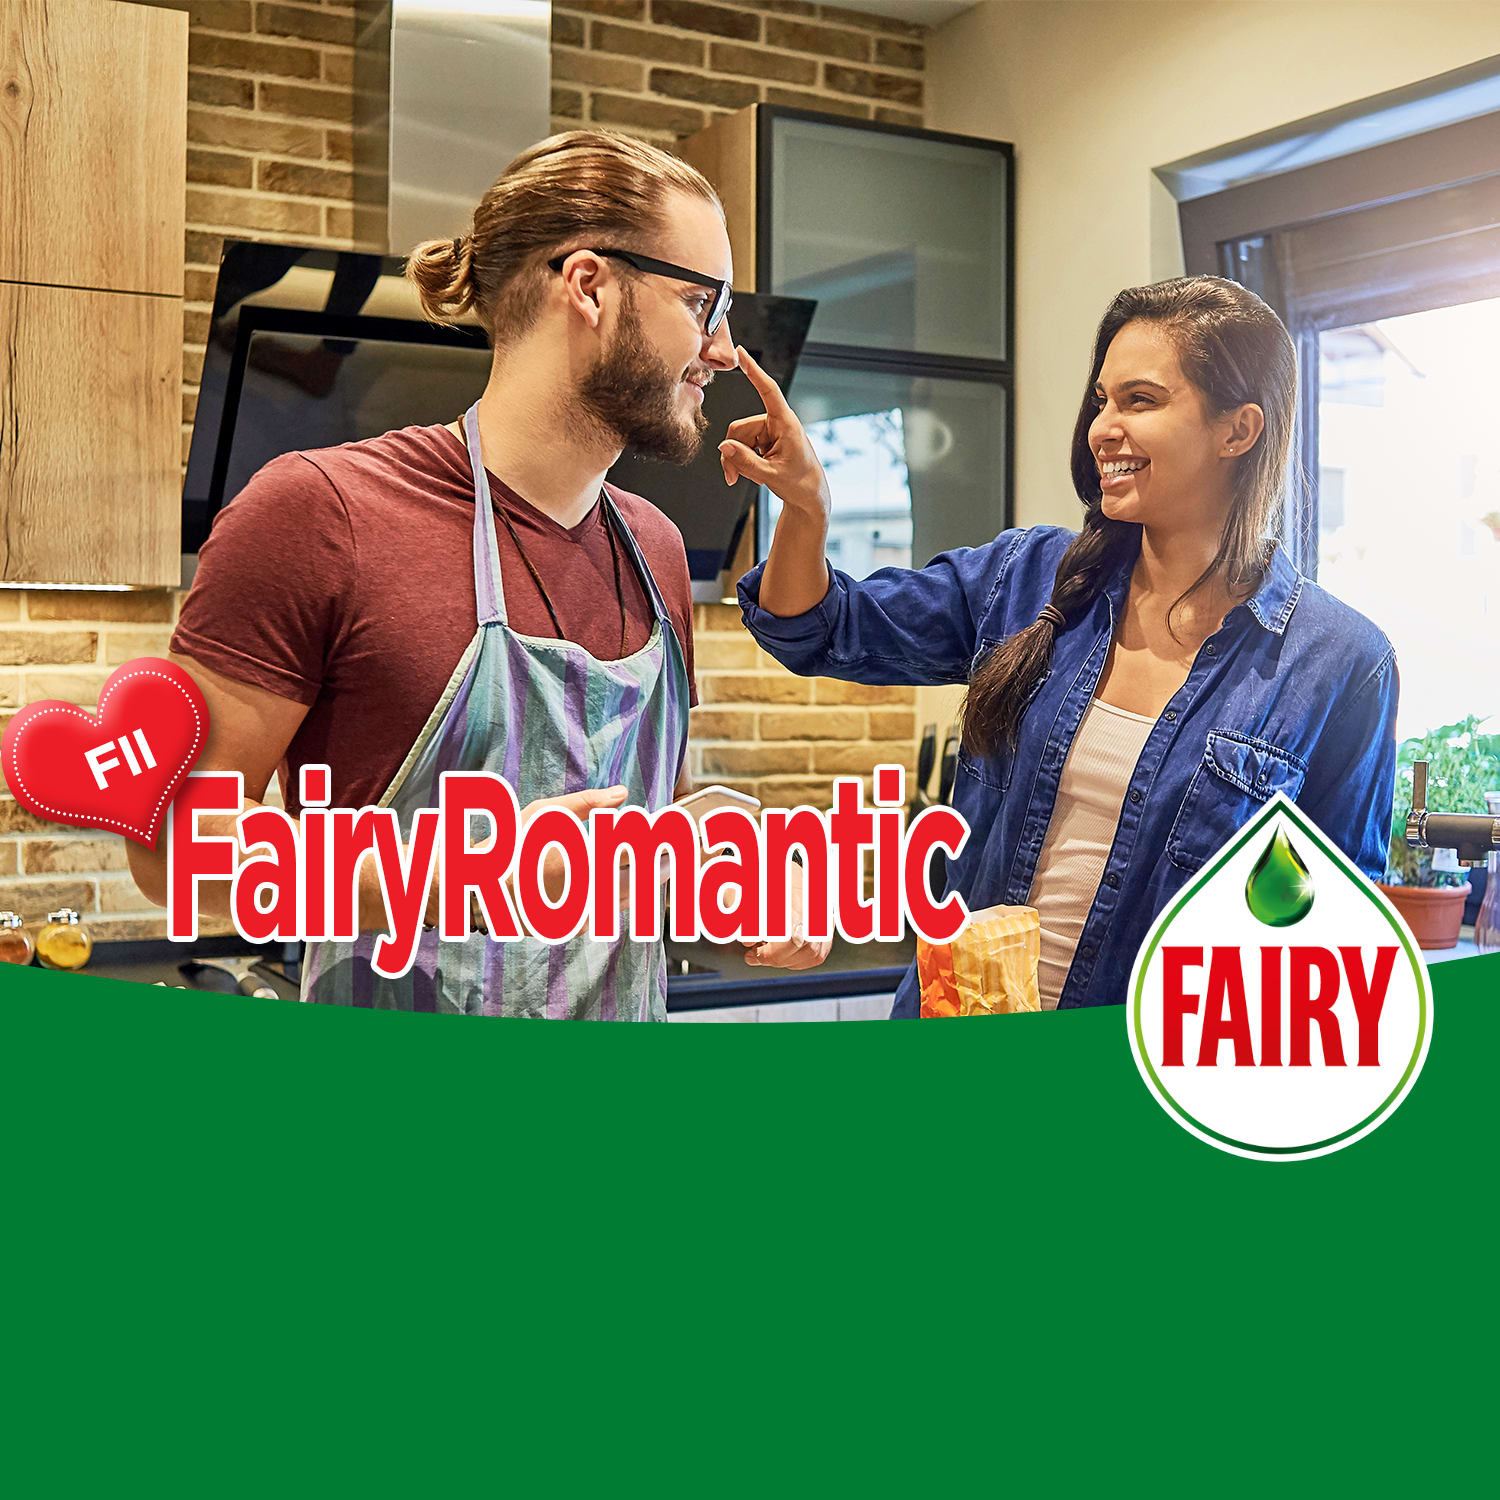 FairyRomantic contest